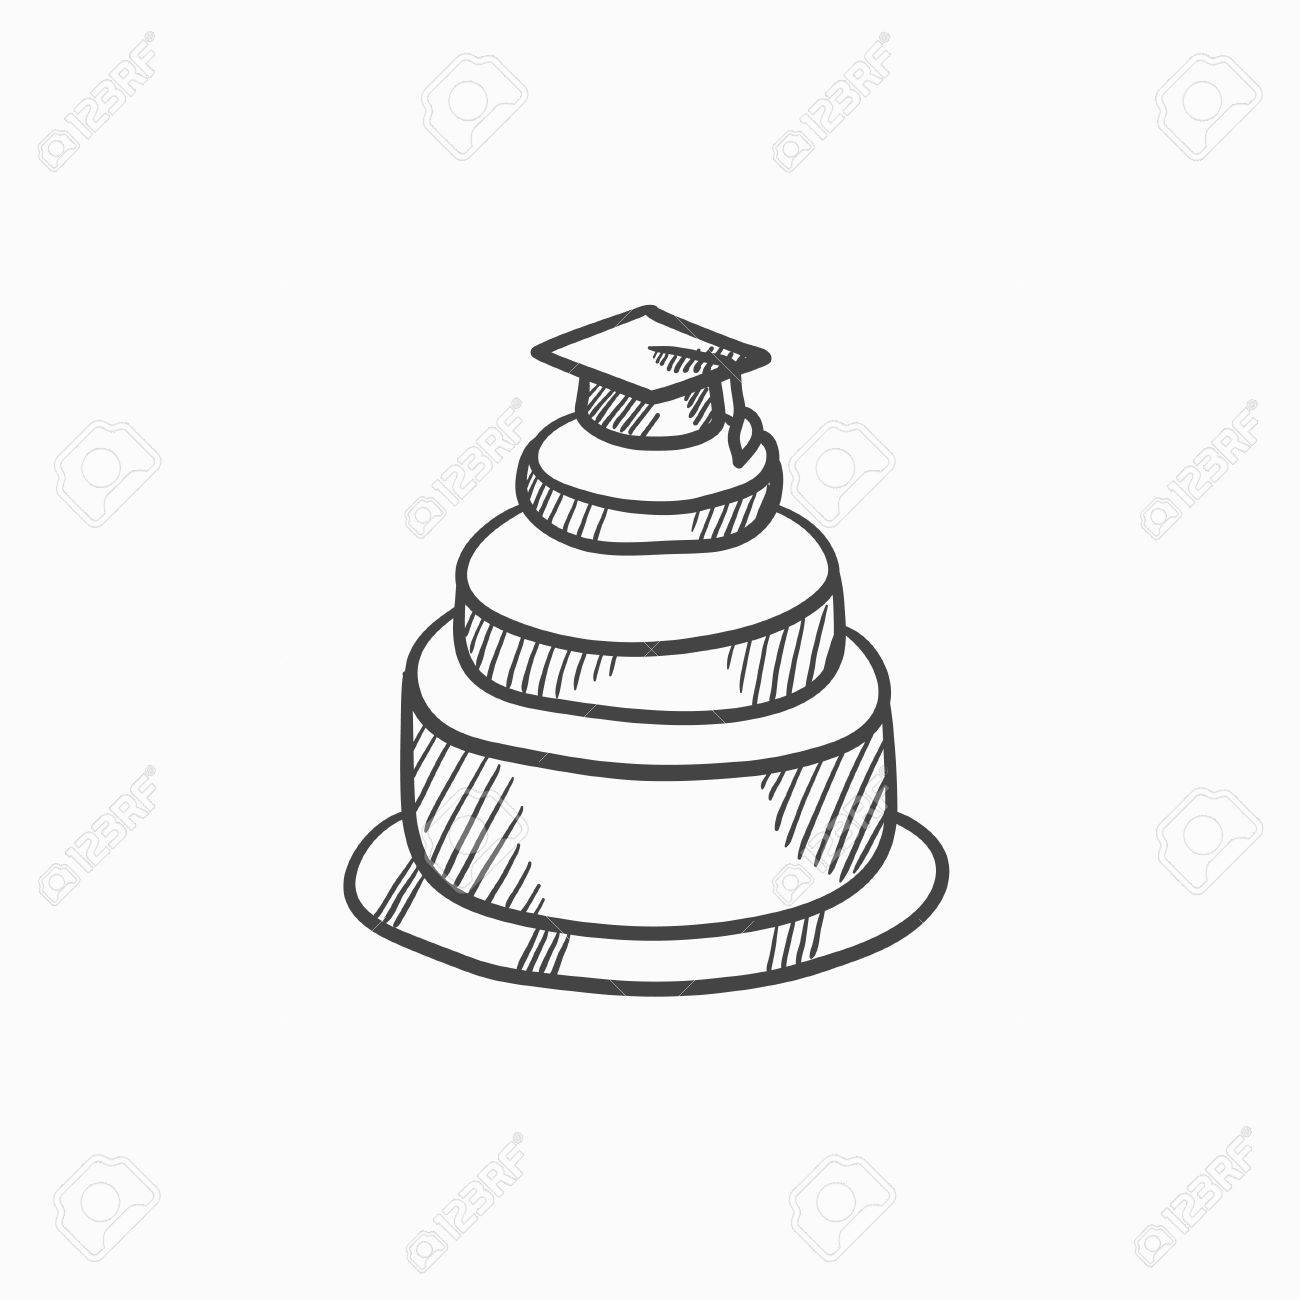 1300x1300 Graduation Cap Top Of Cake Vector Sketch Icon Isolated